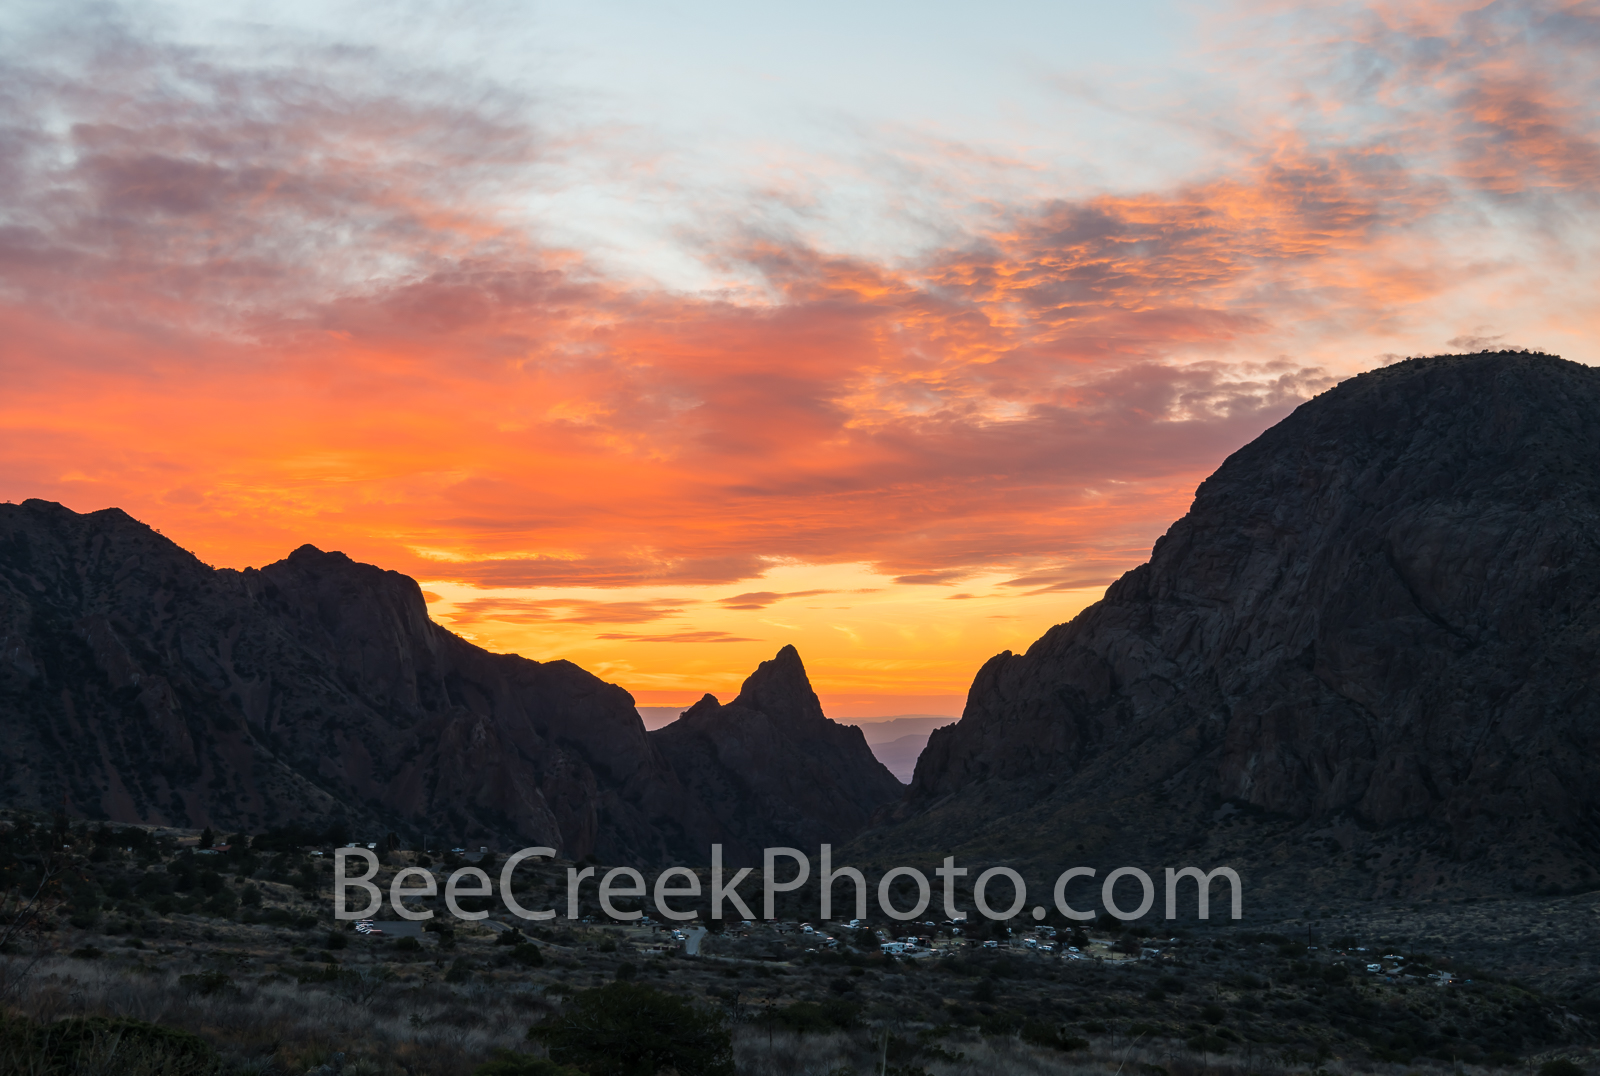 Window, sunset, chiso mountains, siloutte, fiery colors, window view, Big Bend National Park, evening, orange, Chiso mountains, Texas Sunset, Texas landscape, USA, United States, BeeCreekP, photo